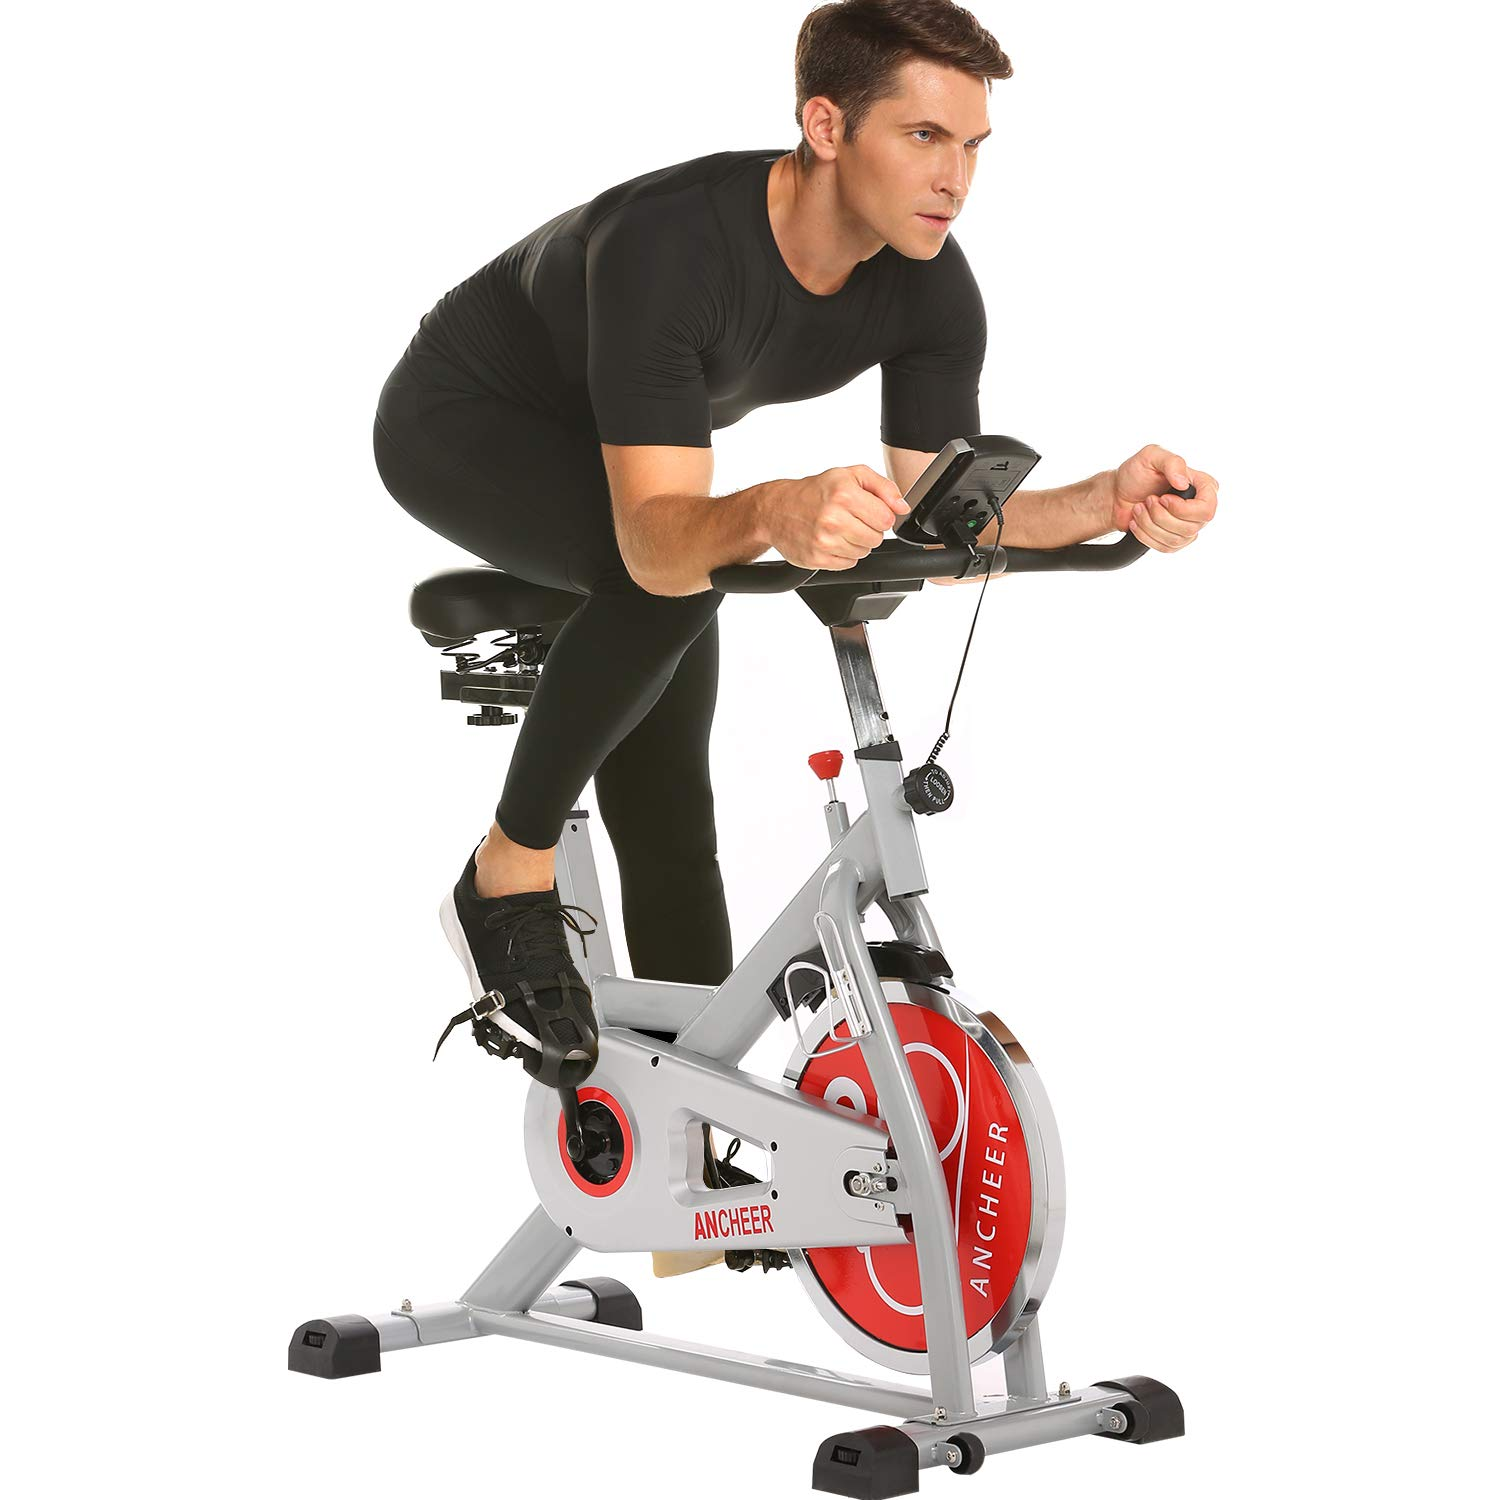 ANCHEER Indoor Cycling Bike, 49 lbs Flywheel Indoor Cycling Exercise Bike with Quiet Smooth Belt Drive System, Adjustable Seat & Handlebars & Base (Sliver)